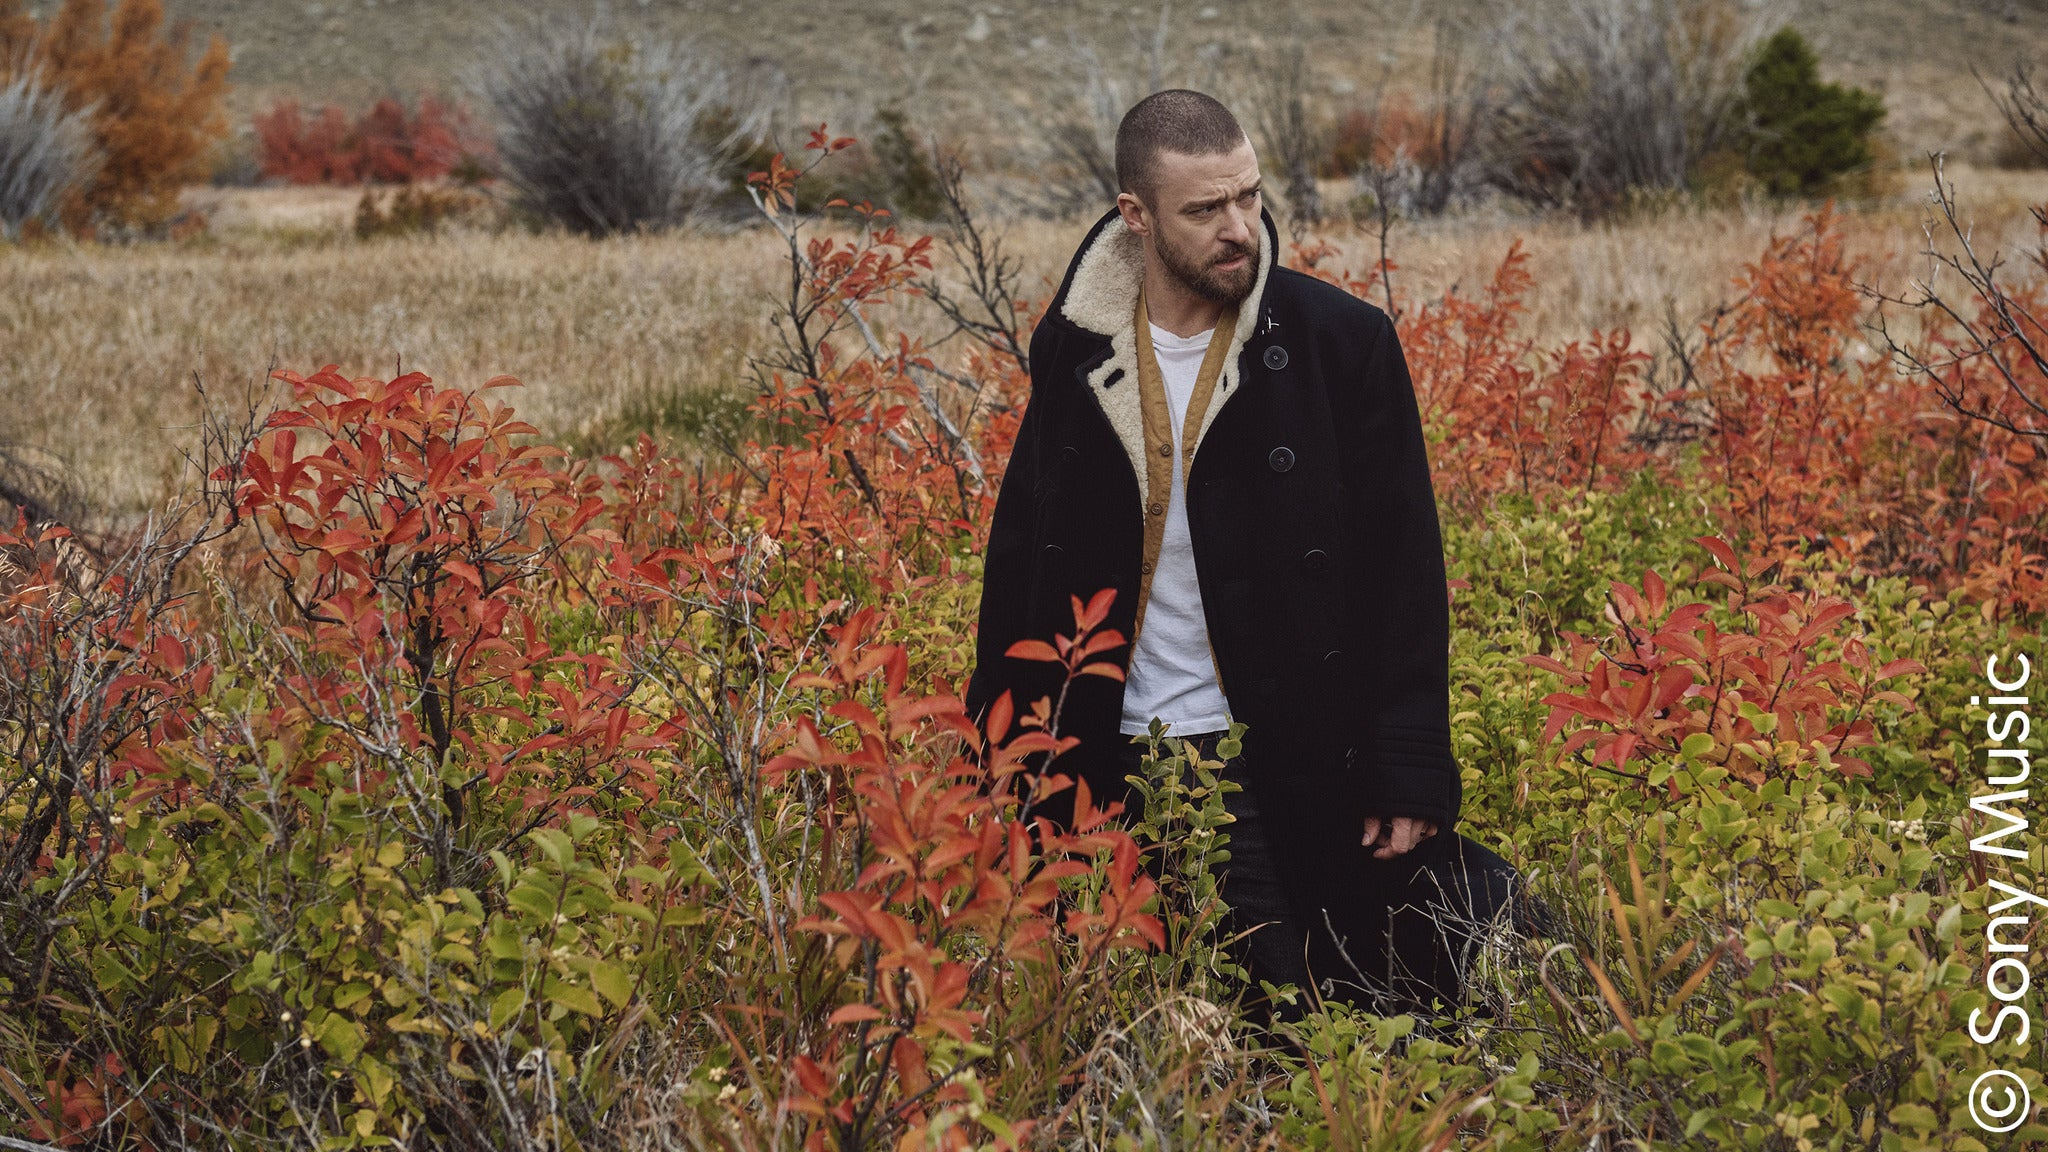 Justin Timberlake - The Man Of The Woods Tour at Boondocks